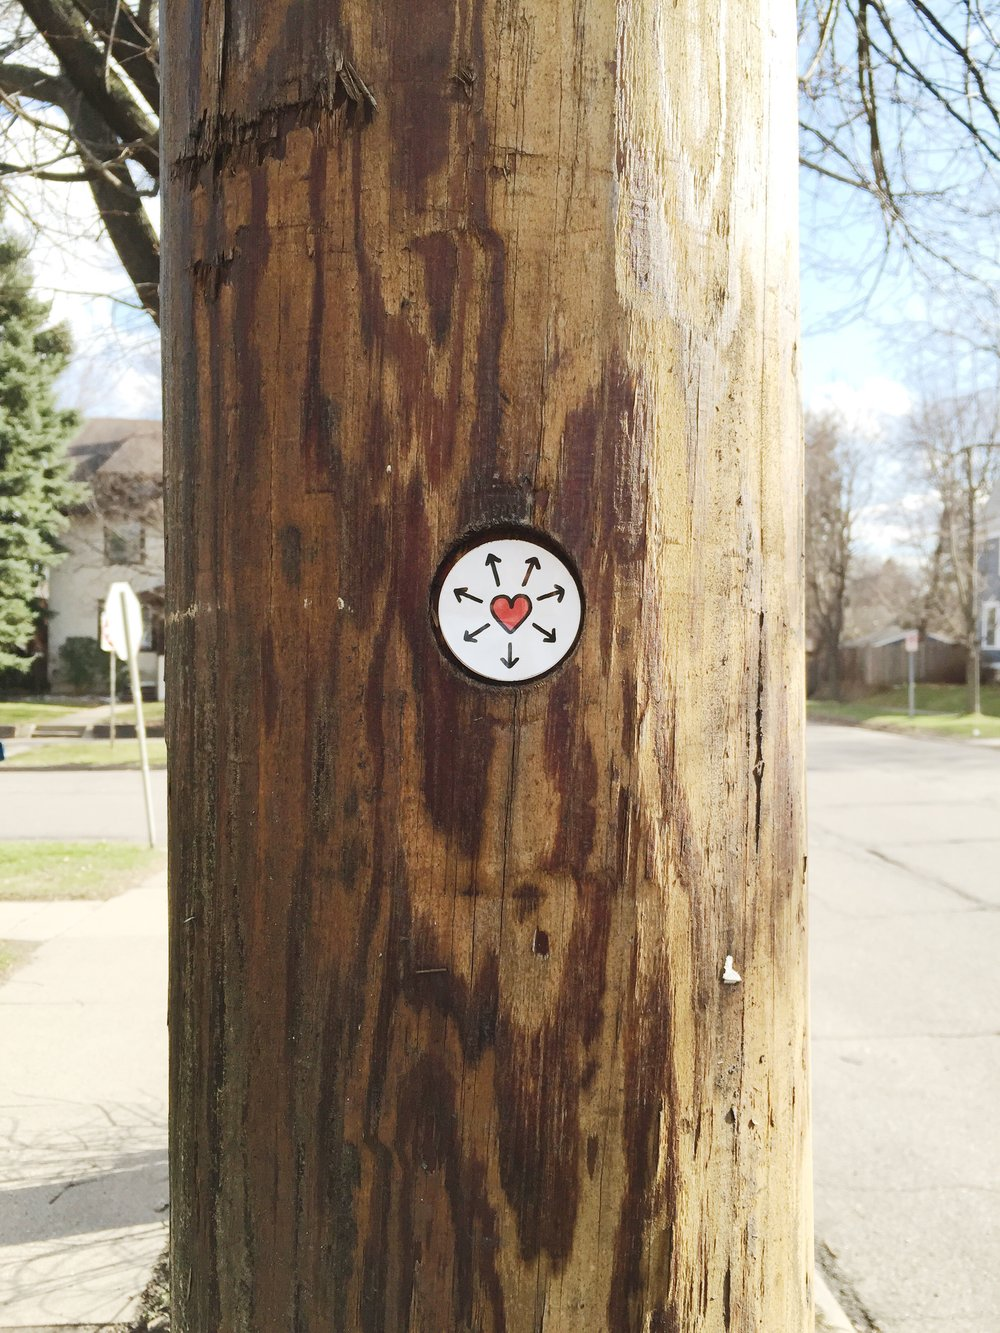 ian-valor-spread-love-symbol-telephone-pole.jpg